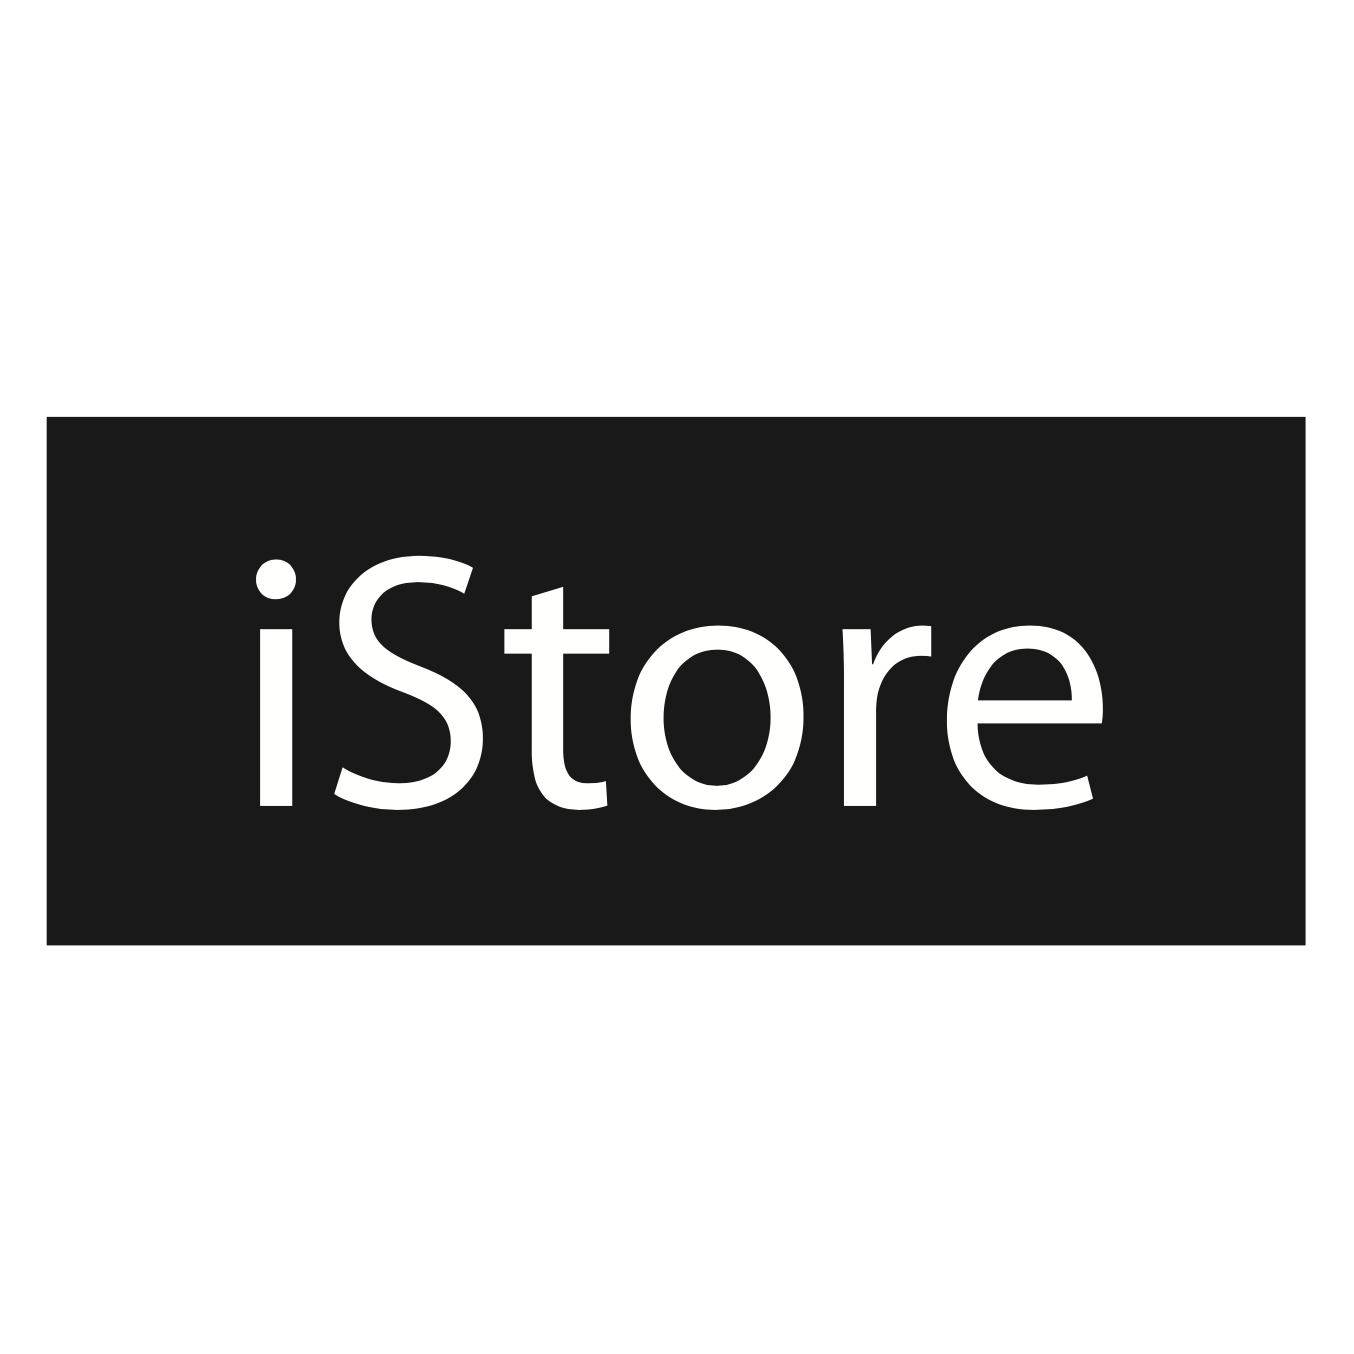 iStore meets Accessibility features